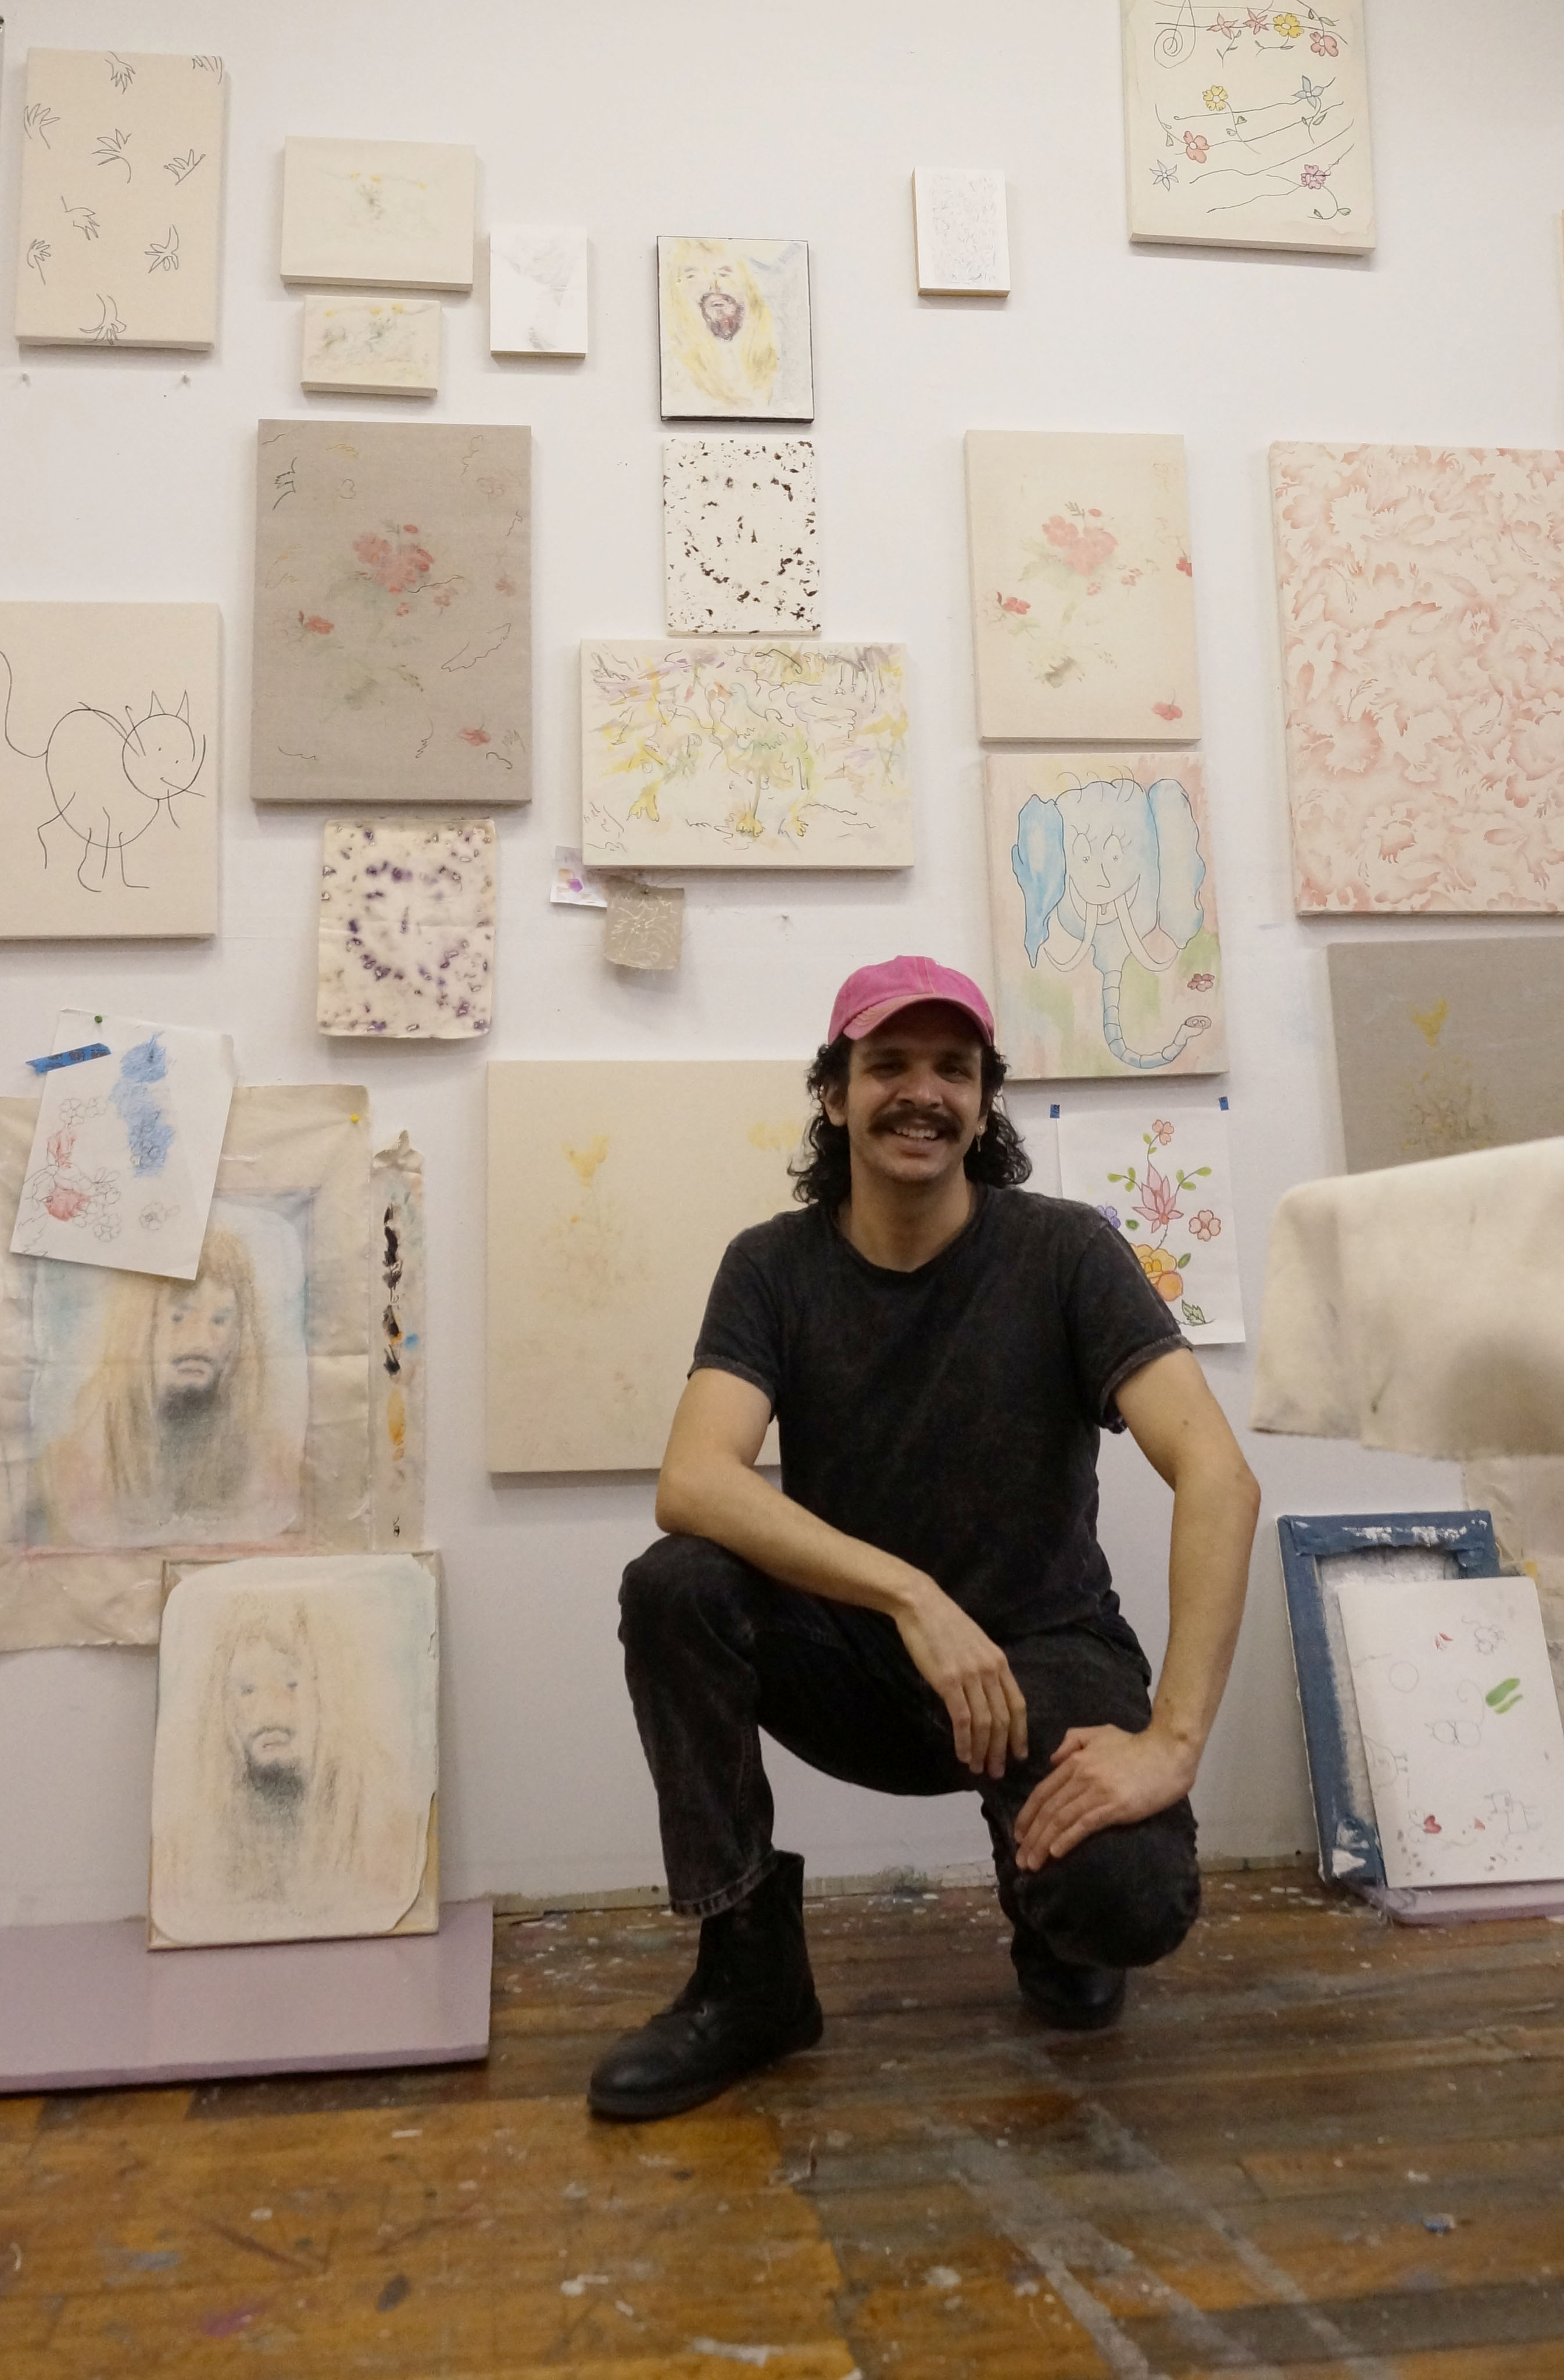 Image: Alejandro Jiménez-Flores crouching down smiling in front of his artwork. He is wearing dark clothing and a pink hat.